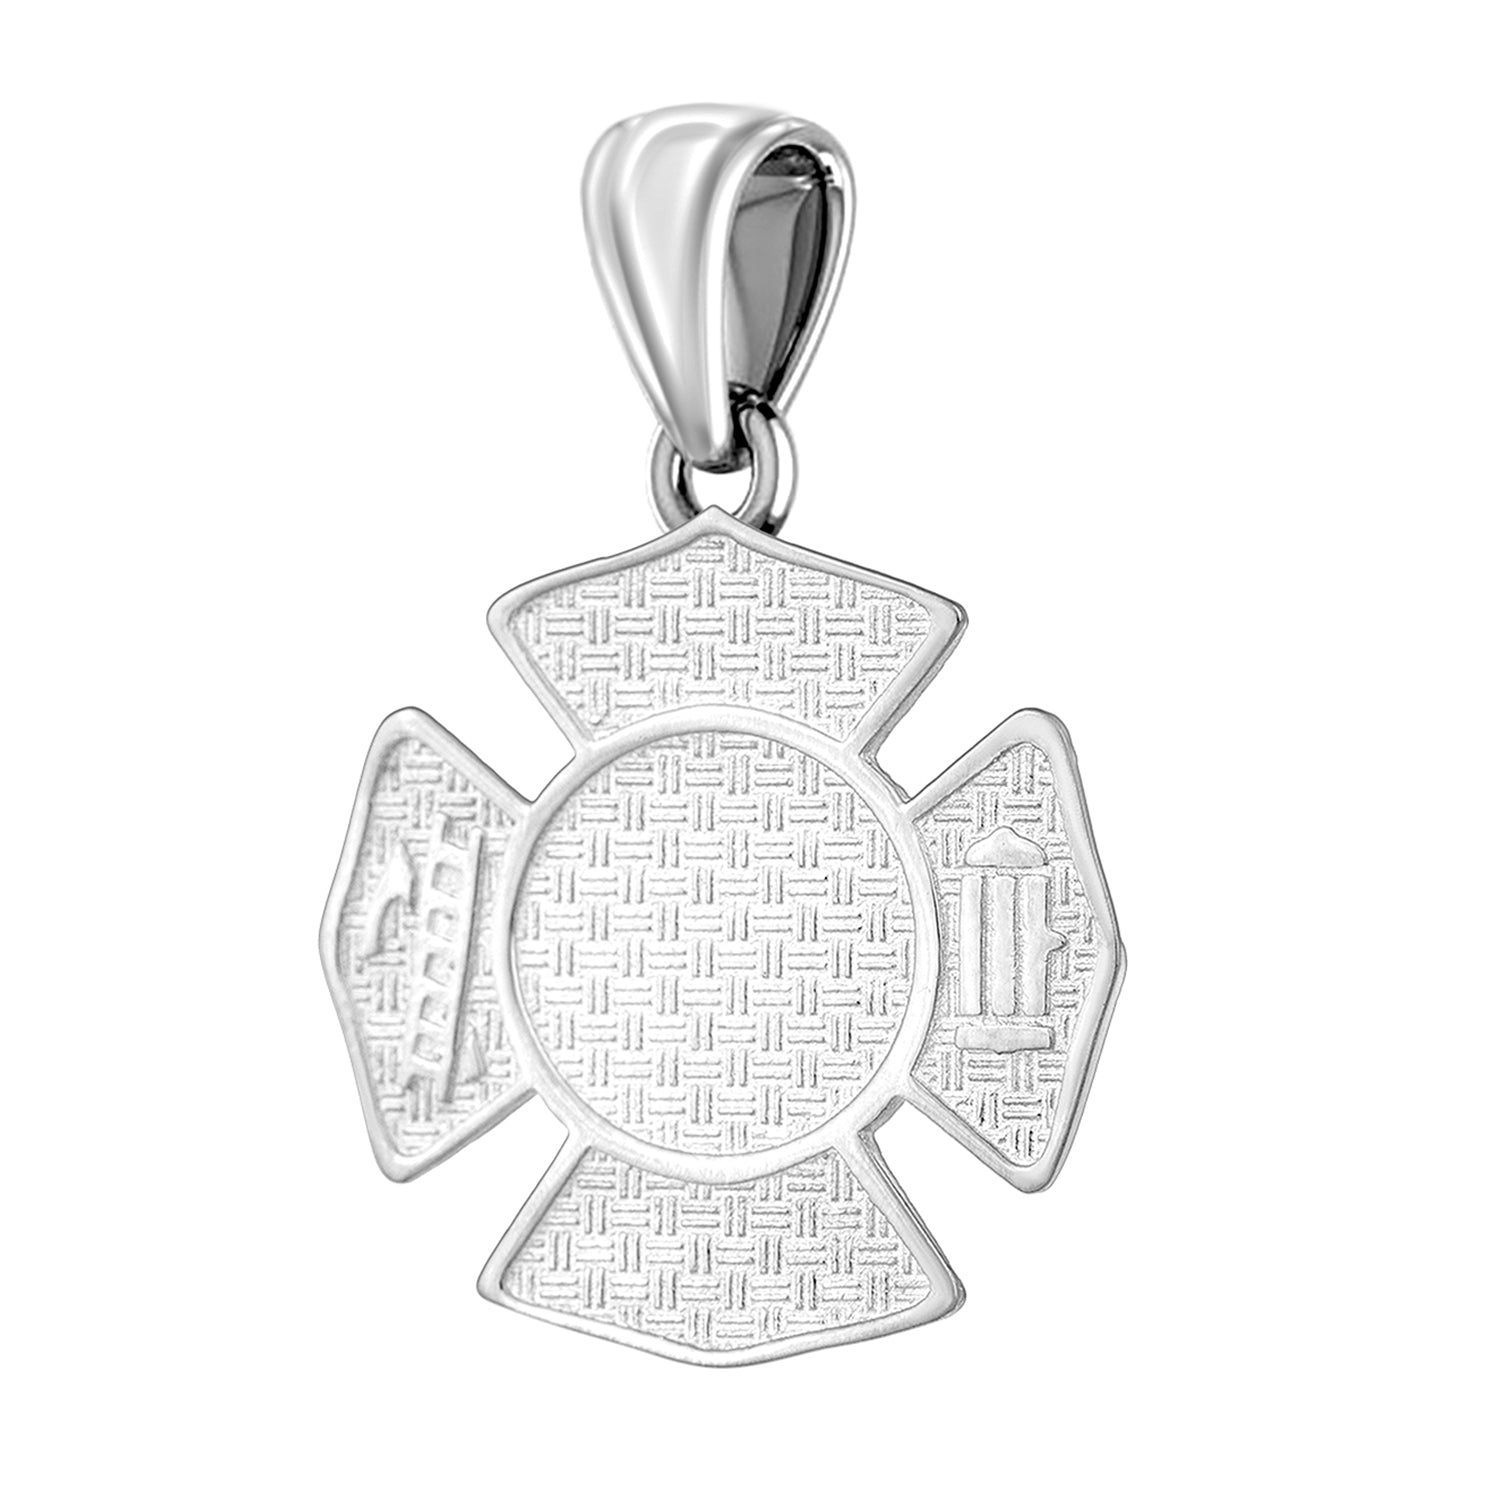 Firefighter Pendant of 26mm Length - Pendant Only